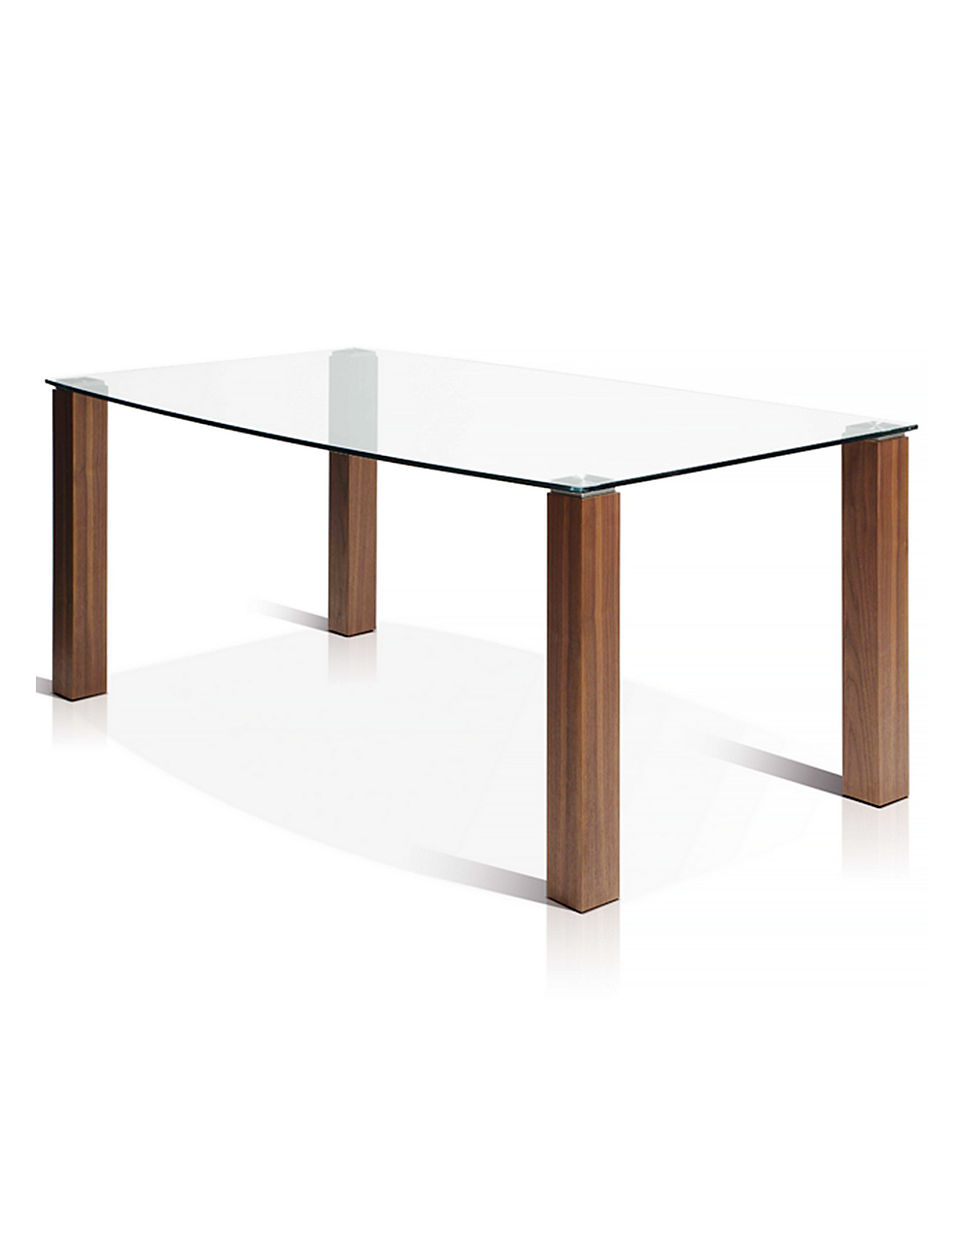 Jenna Boat Shape Glass Top Dining Table With Wooden Legs